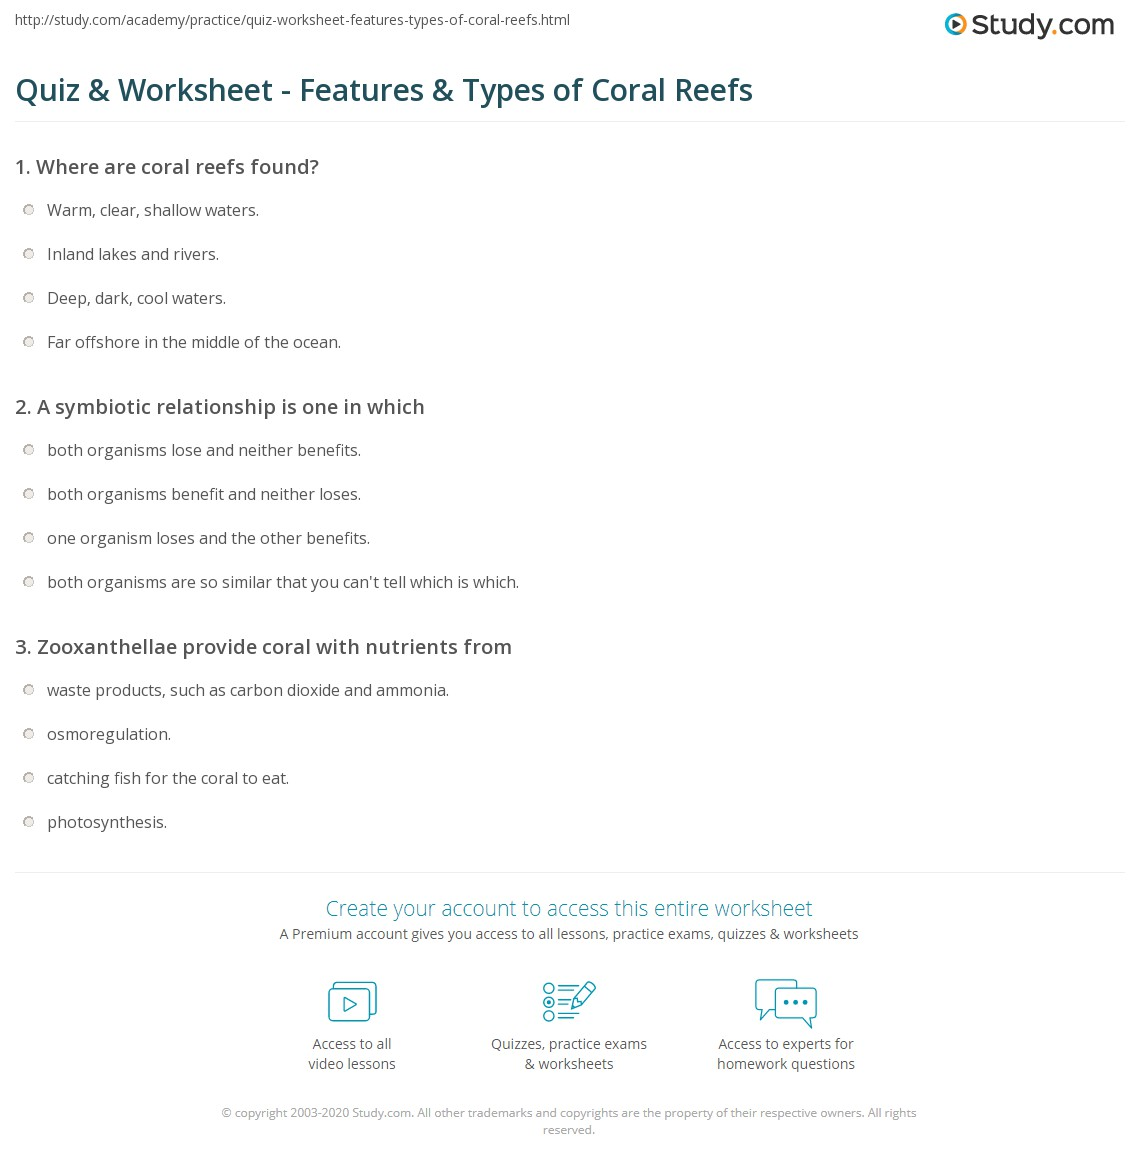 quiz worksheet features types of coral reefs. Black Bedroom Furniture Sets. Home Design Ideas